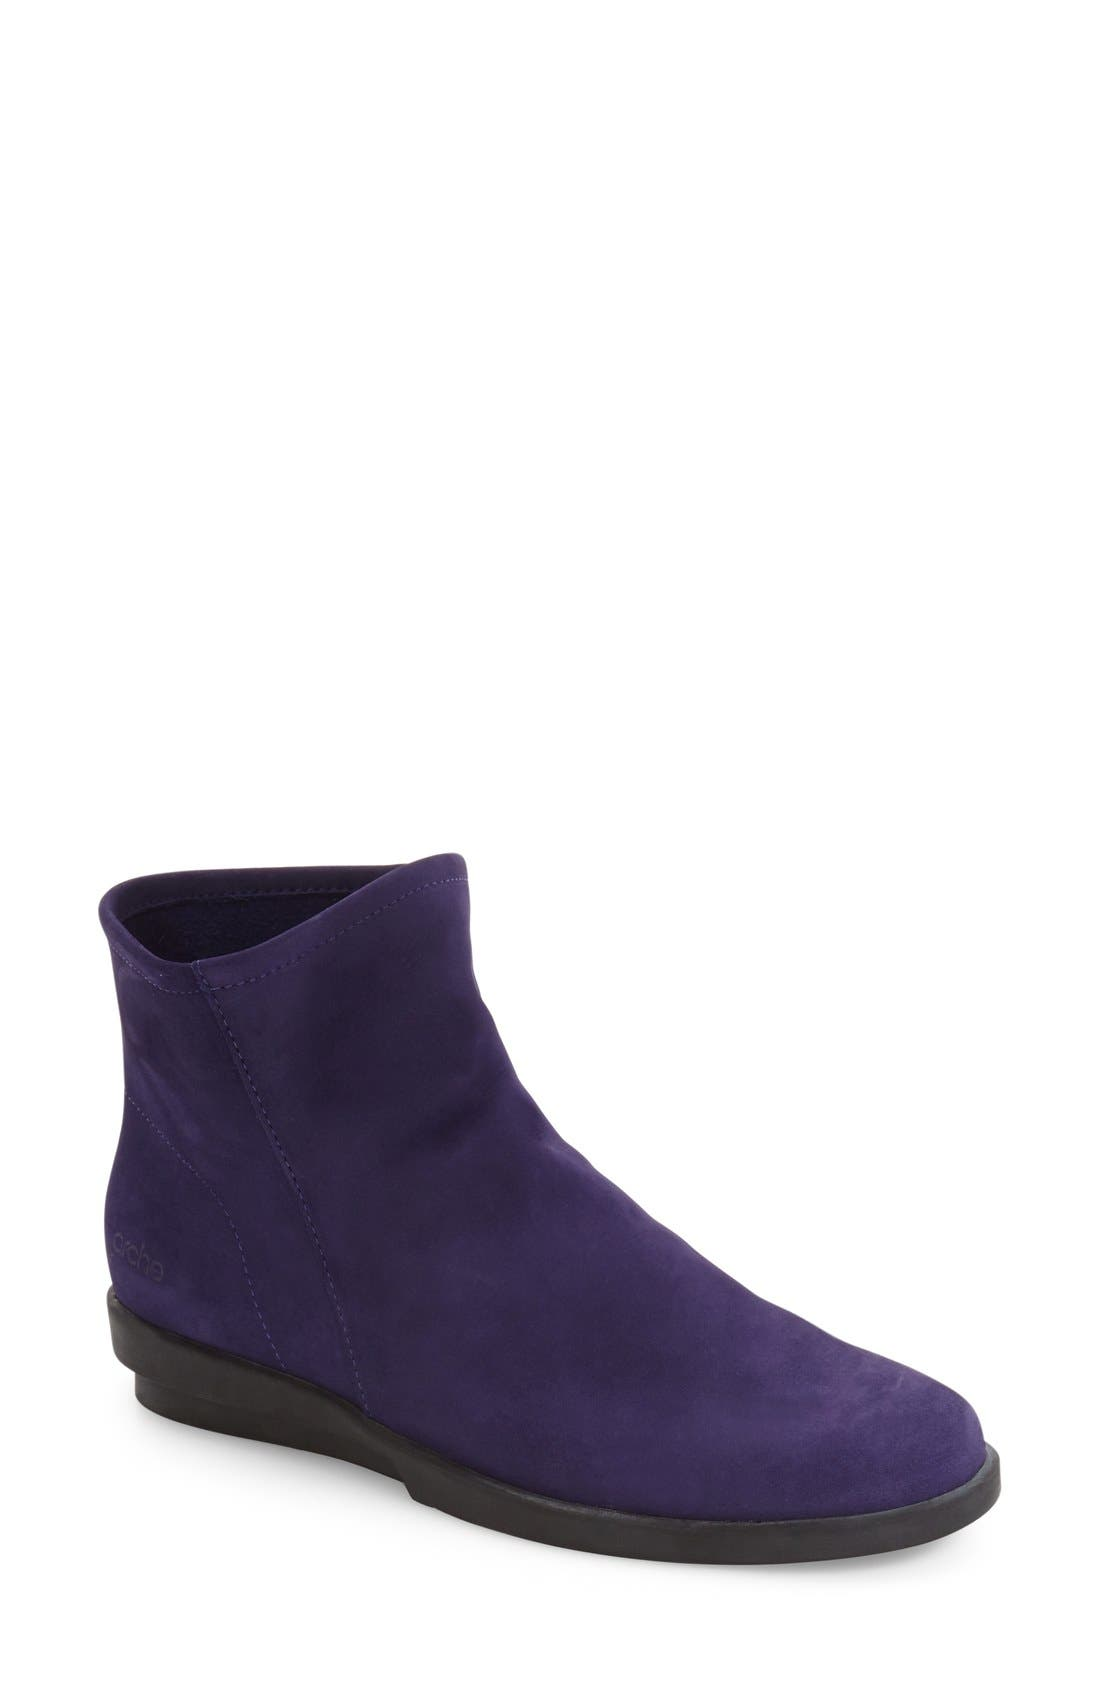 Alternate Image 1 Selected - Arche 'Detyam' Wedge Zip Bootie (Women)